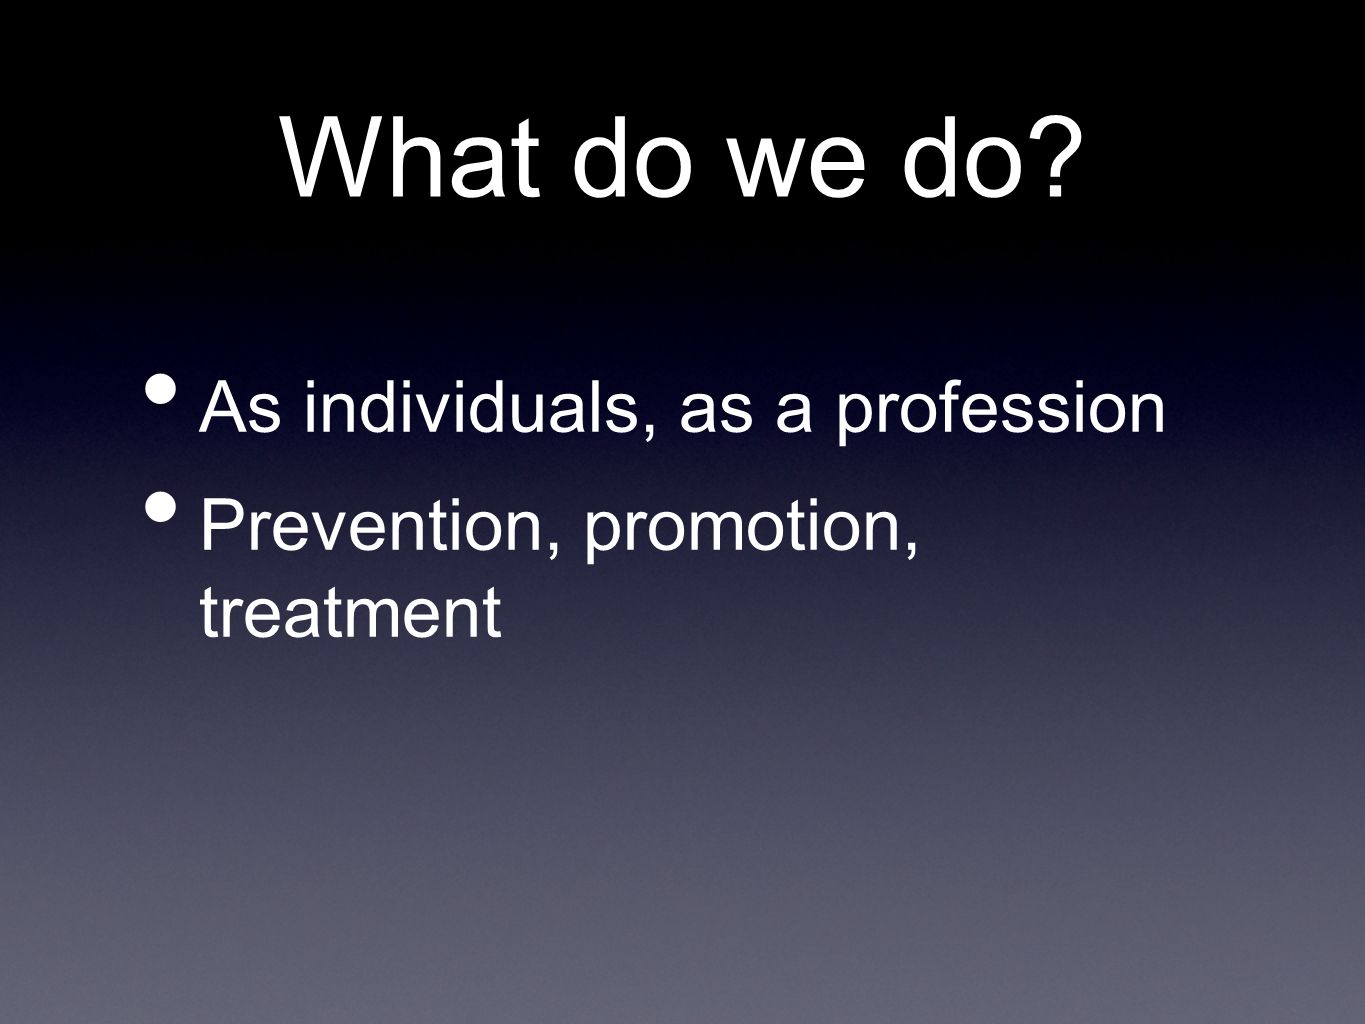 What do we do? As individuals, as a profession Prevention, promotion, treatment